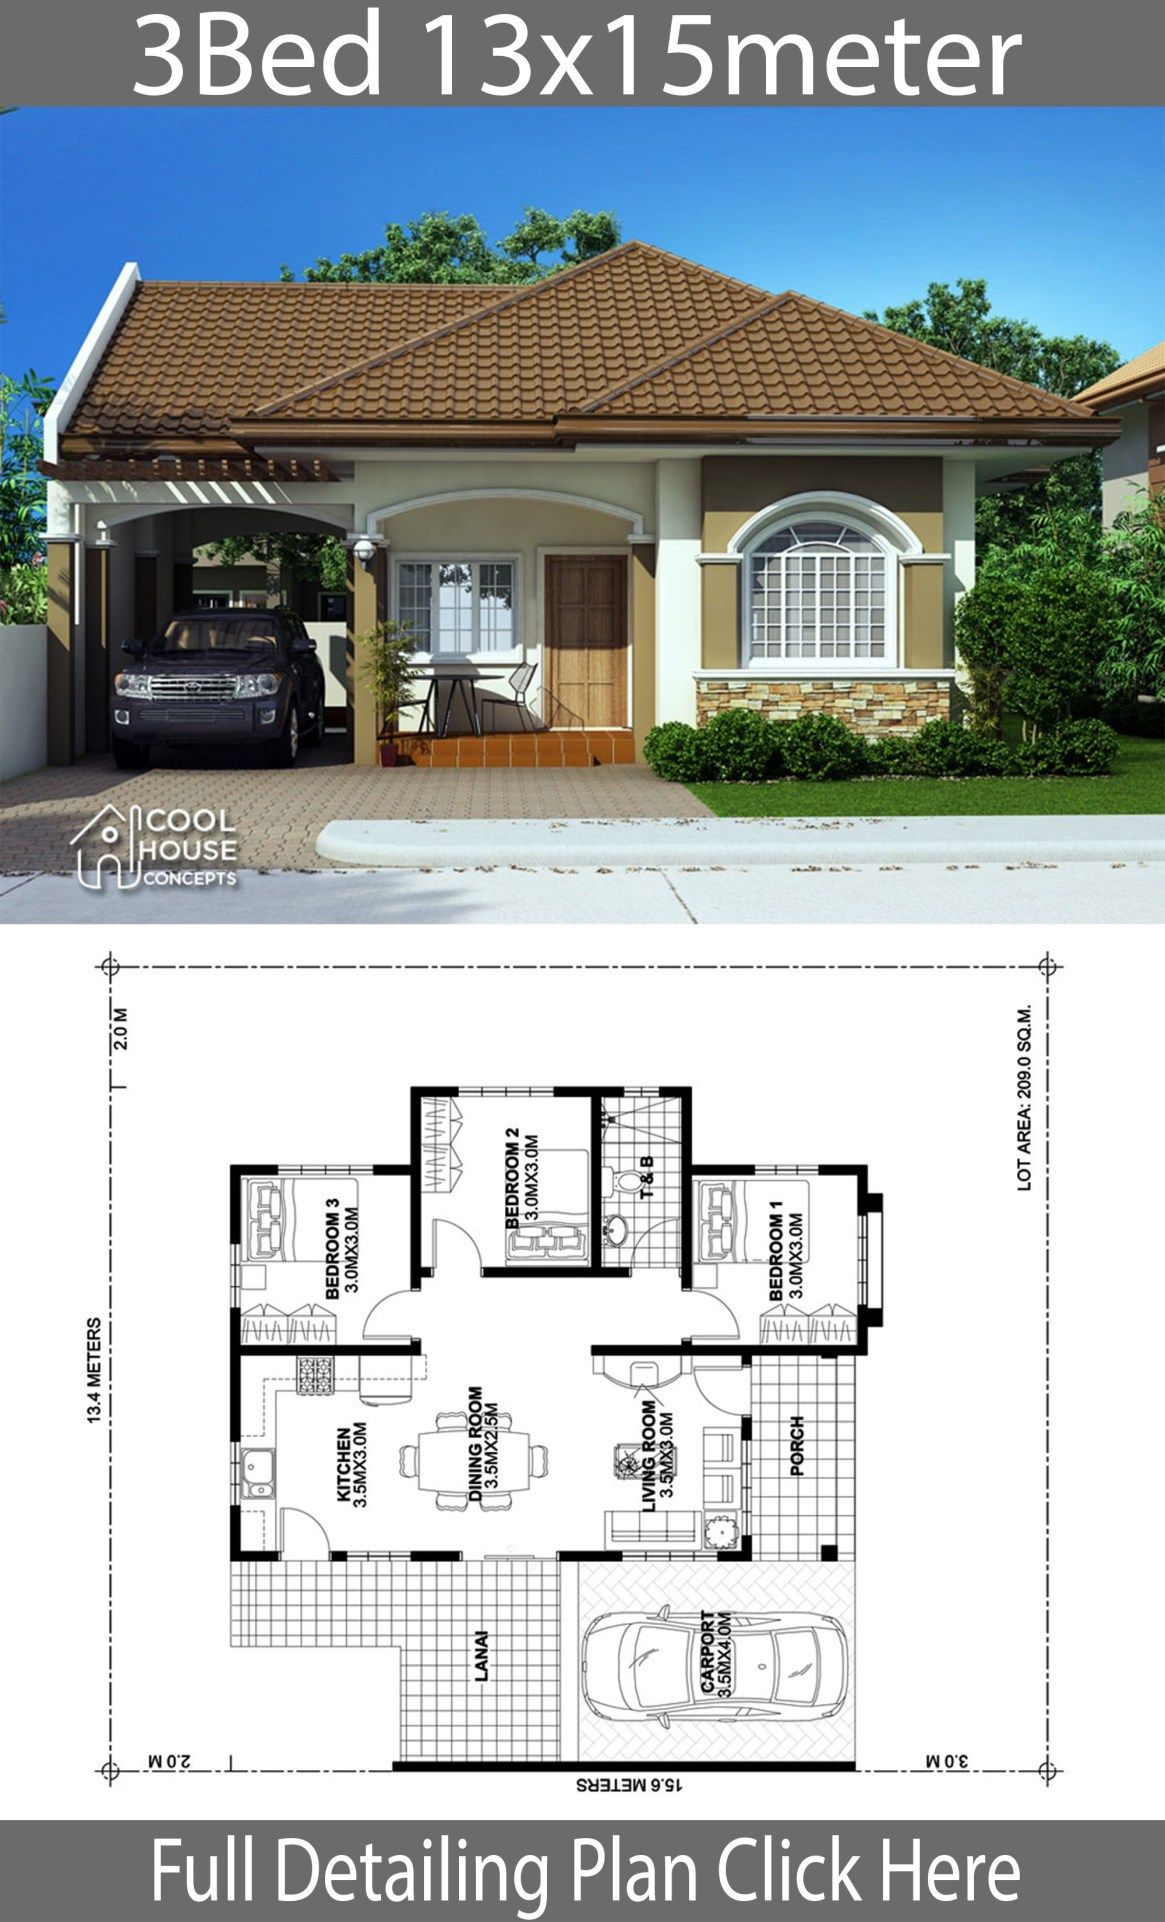 Home Design Plan 13x15m With 3 Bedrooms Home Design With Plansearch Affordable House Plans Philippines House Design Beautiful House Plans